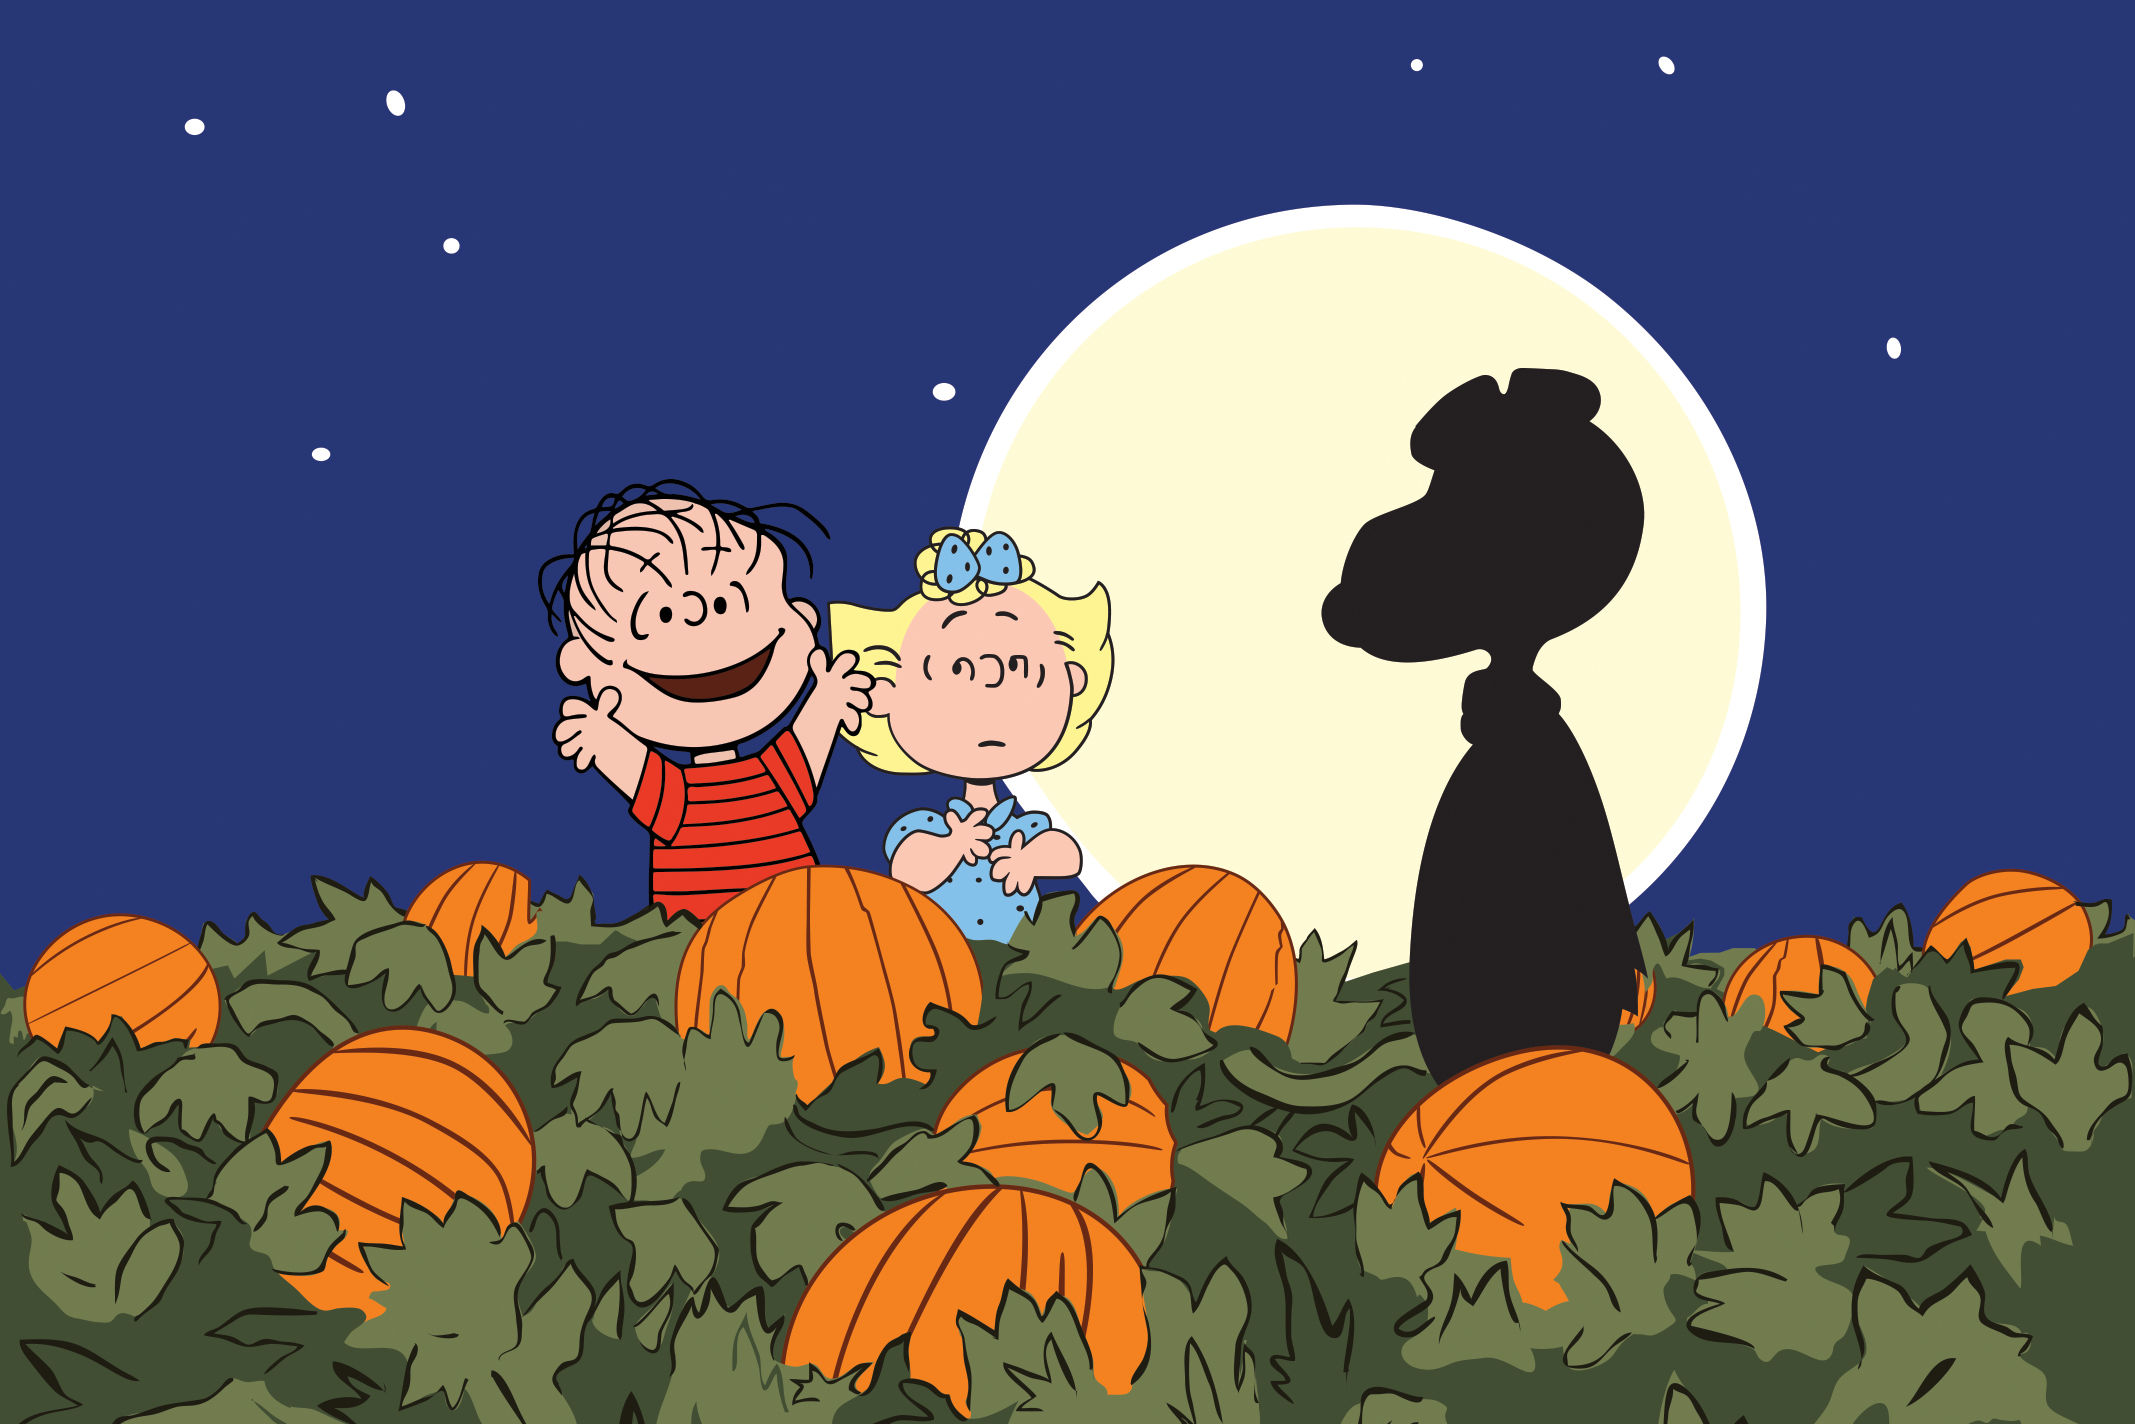 It's the Great Big Corn Maze, Charlie Brown!